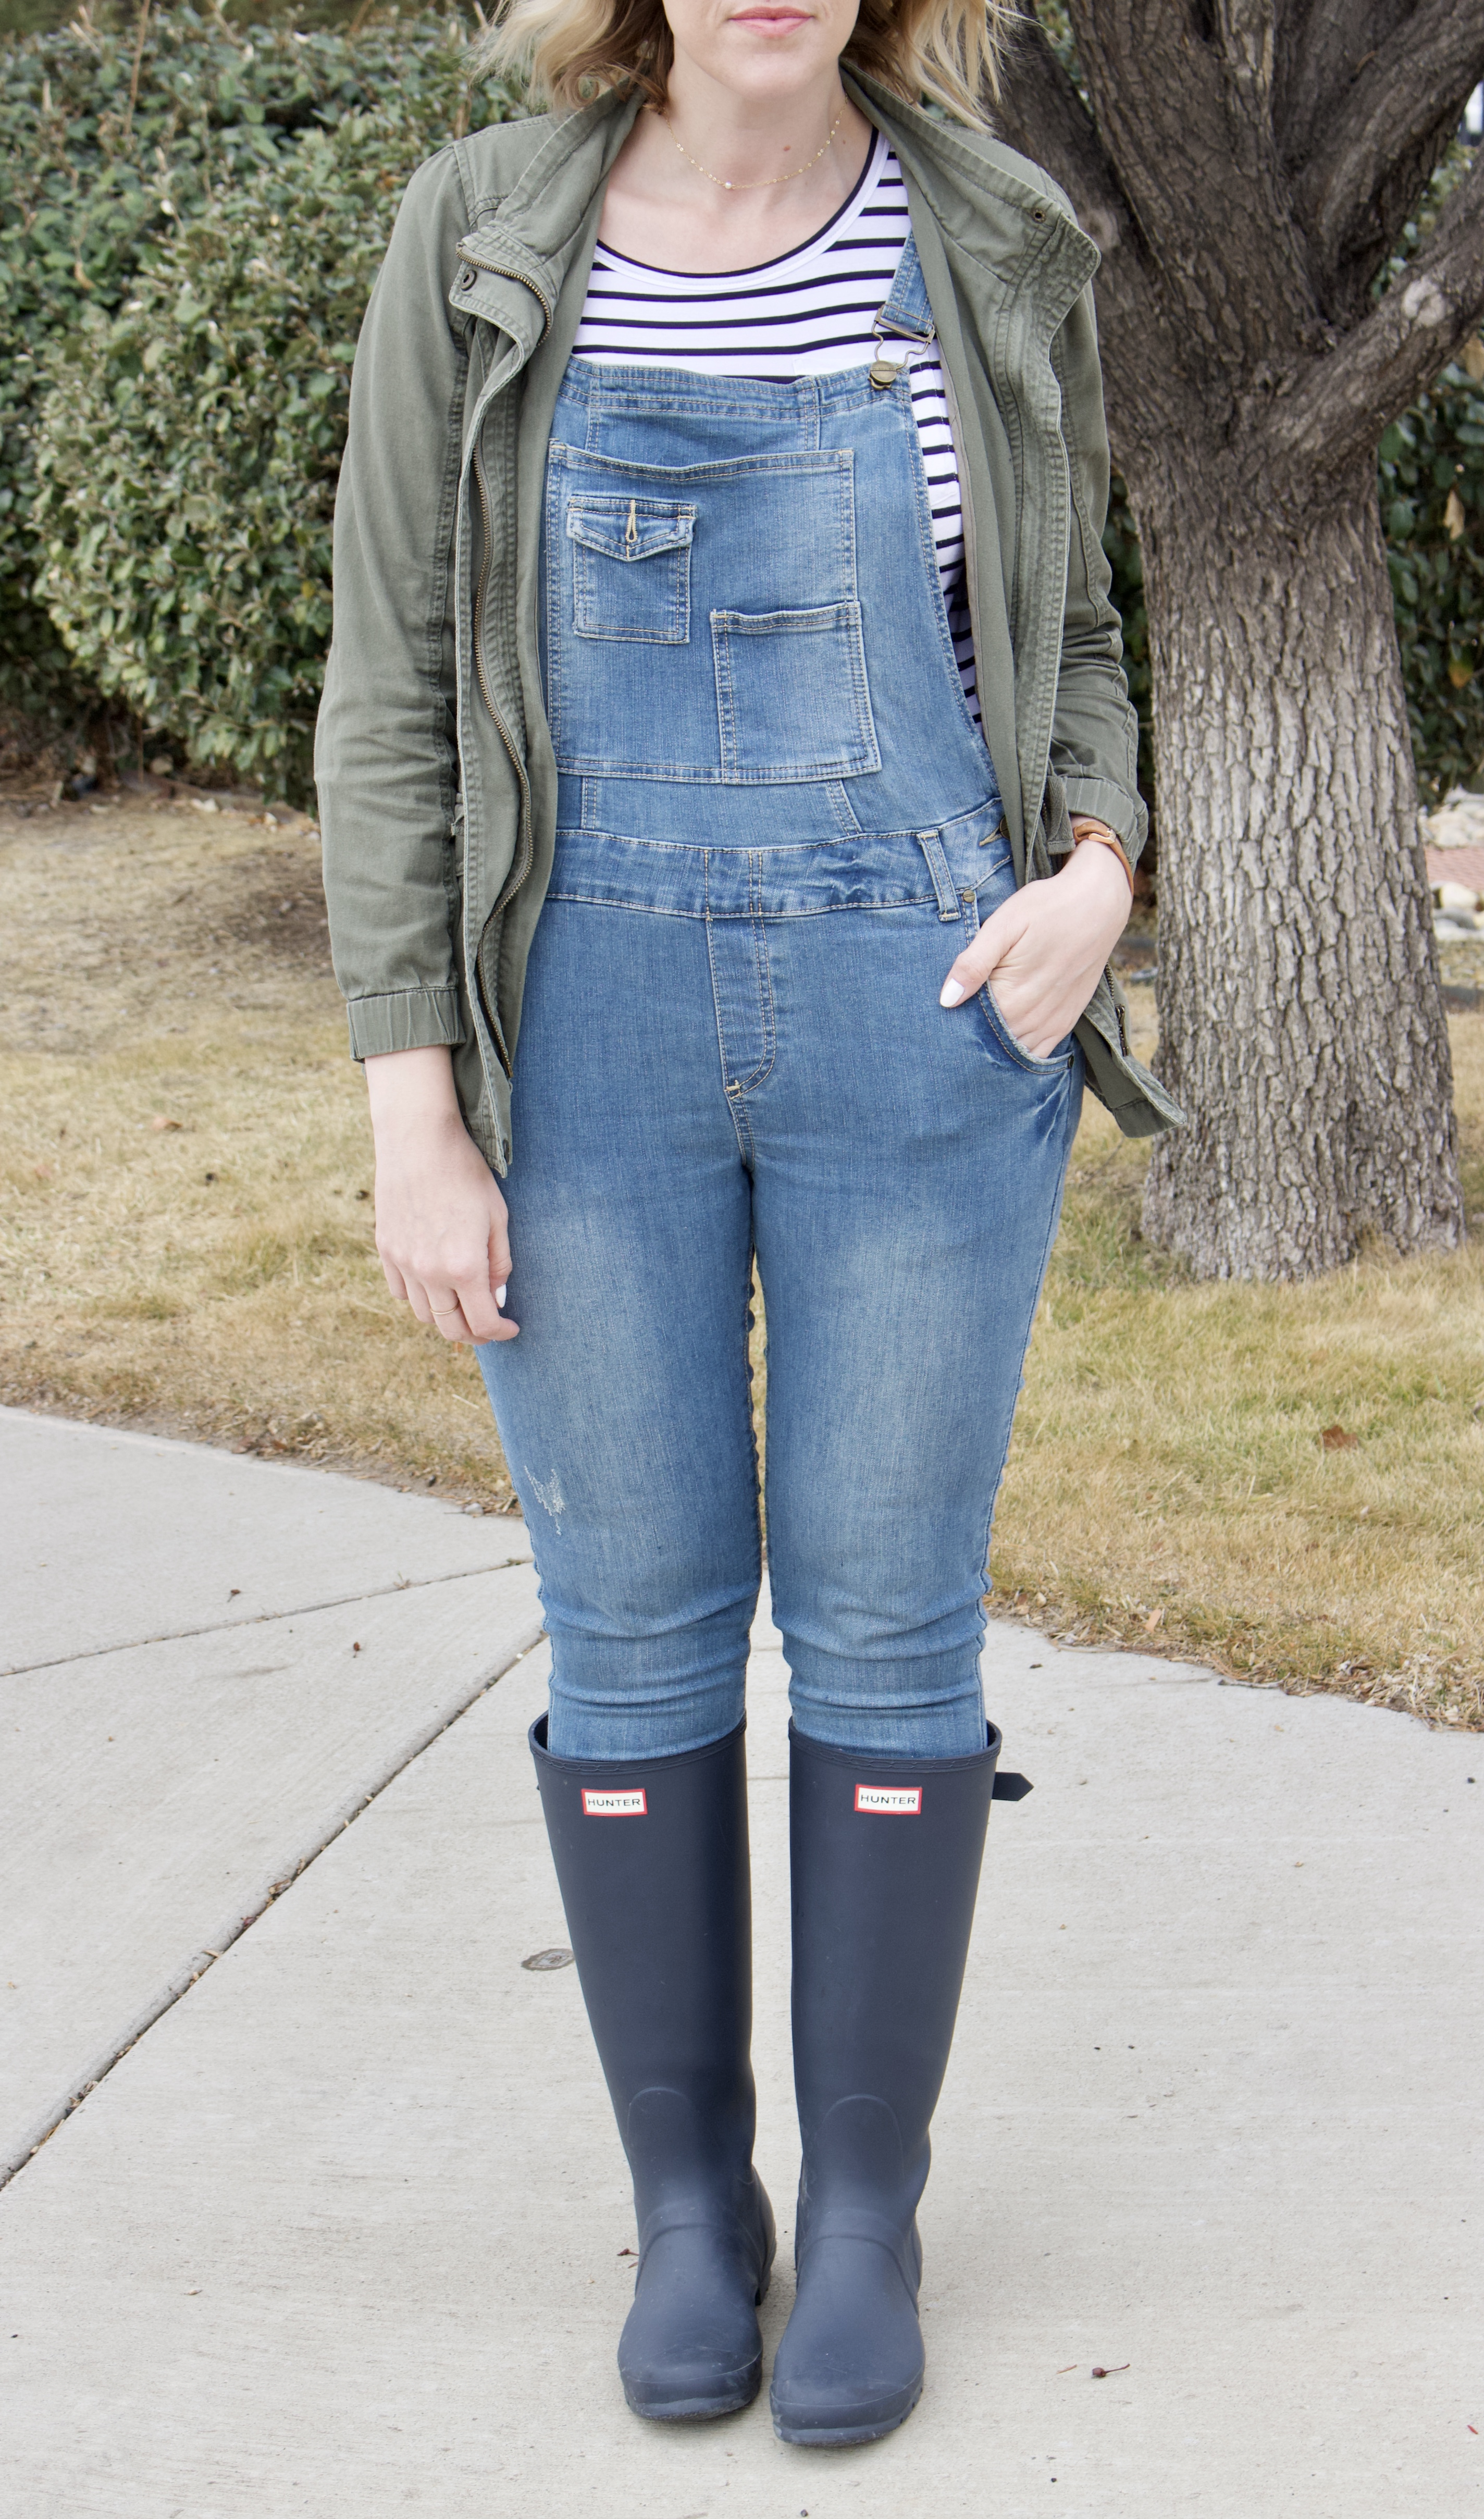 overalls hunter boots outfit #overallsforwomen #curvyfashion #hunterboots